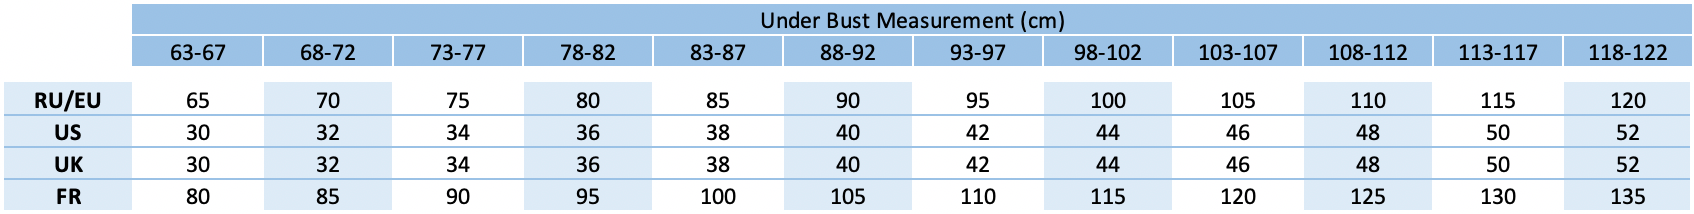 Under bust measurement (cm)